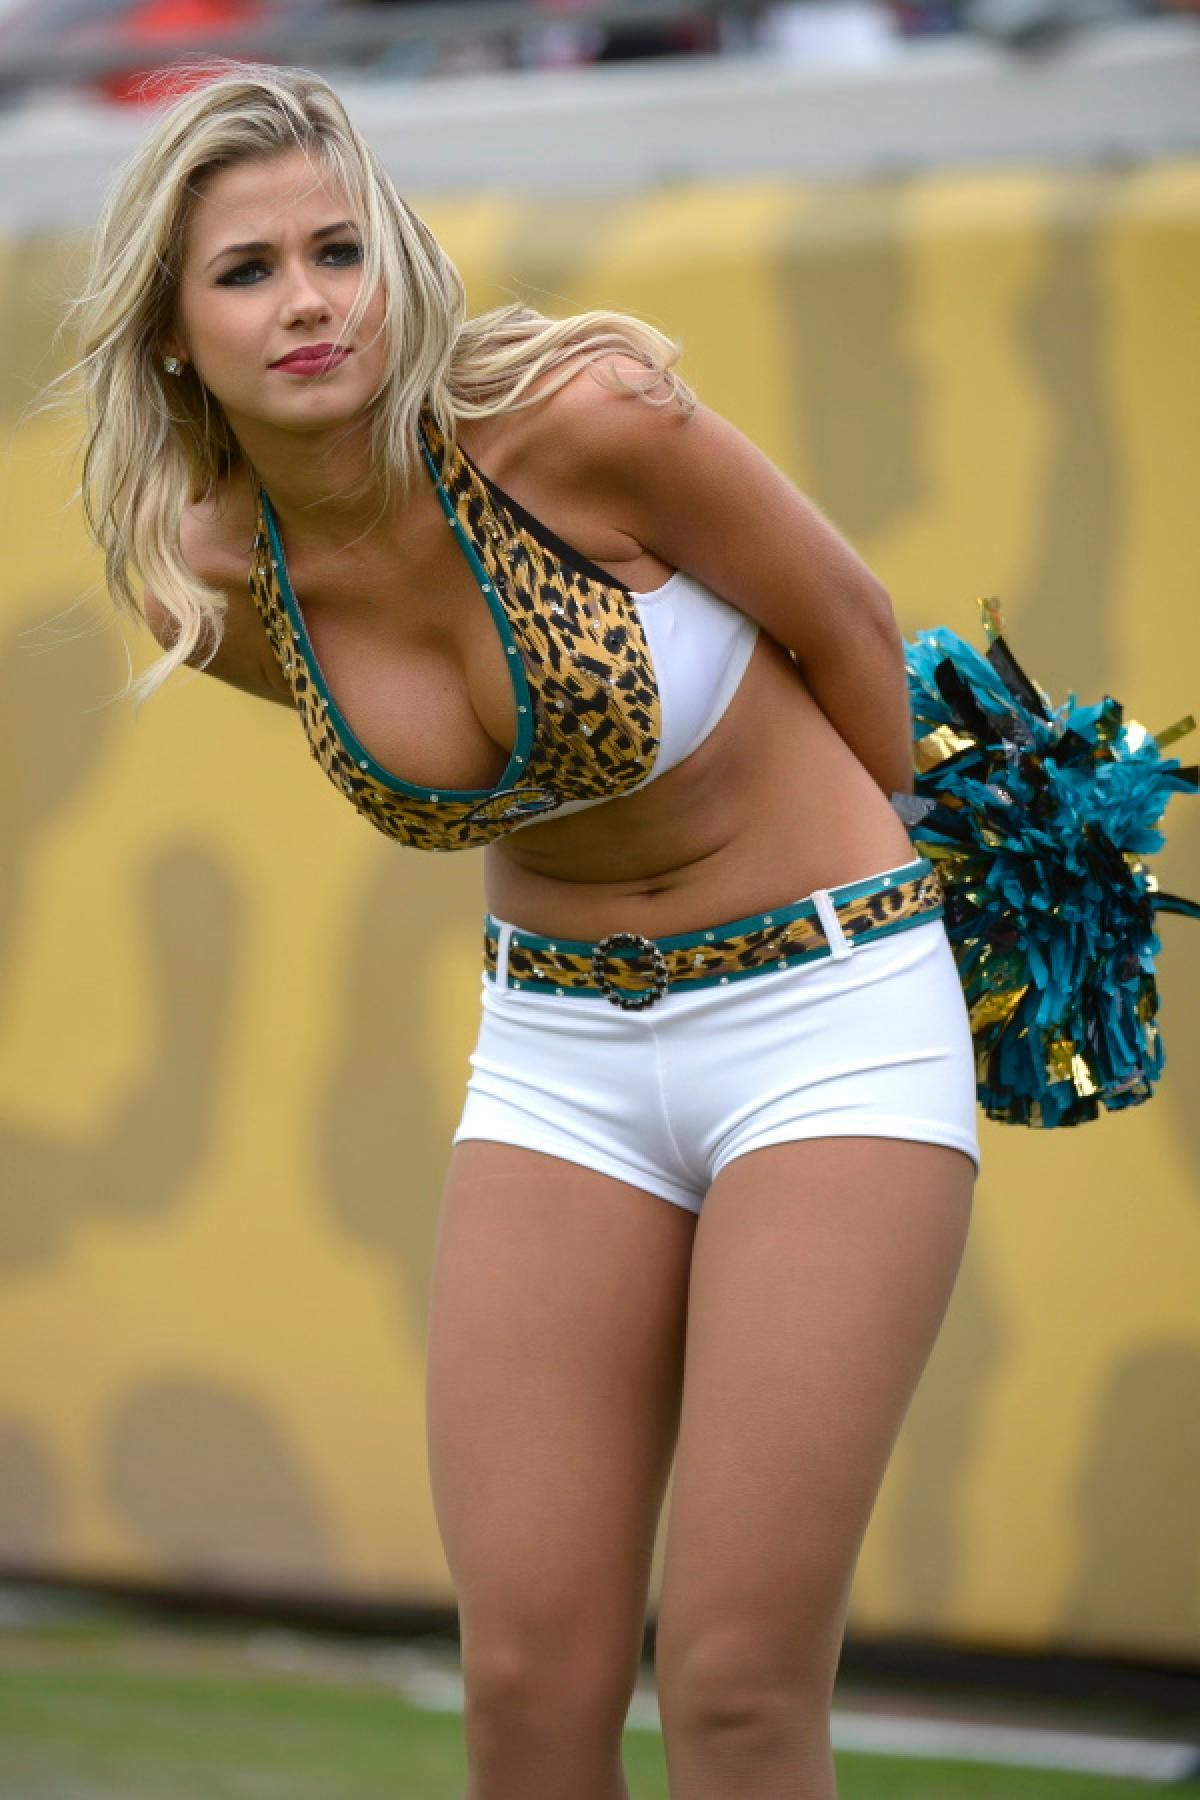 nfl cheerleaders show off their team spirit in week 15 | action